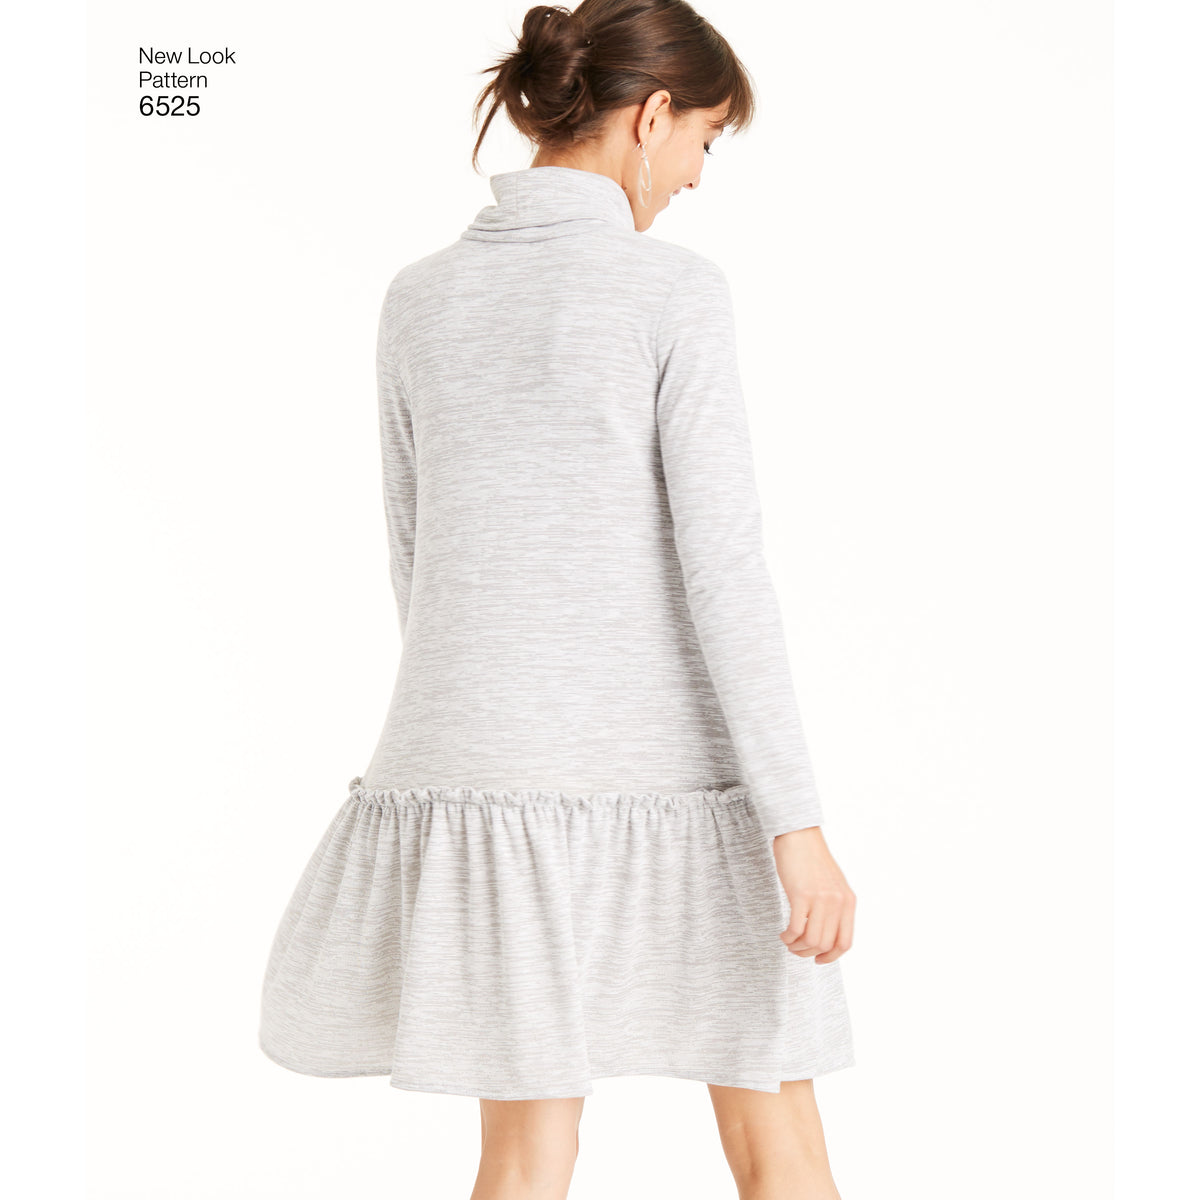 6525 New Look Pattern 6525 Women's Knit Dress